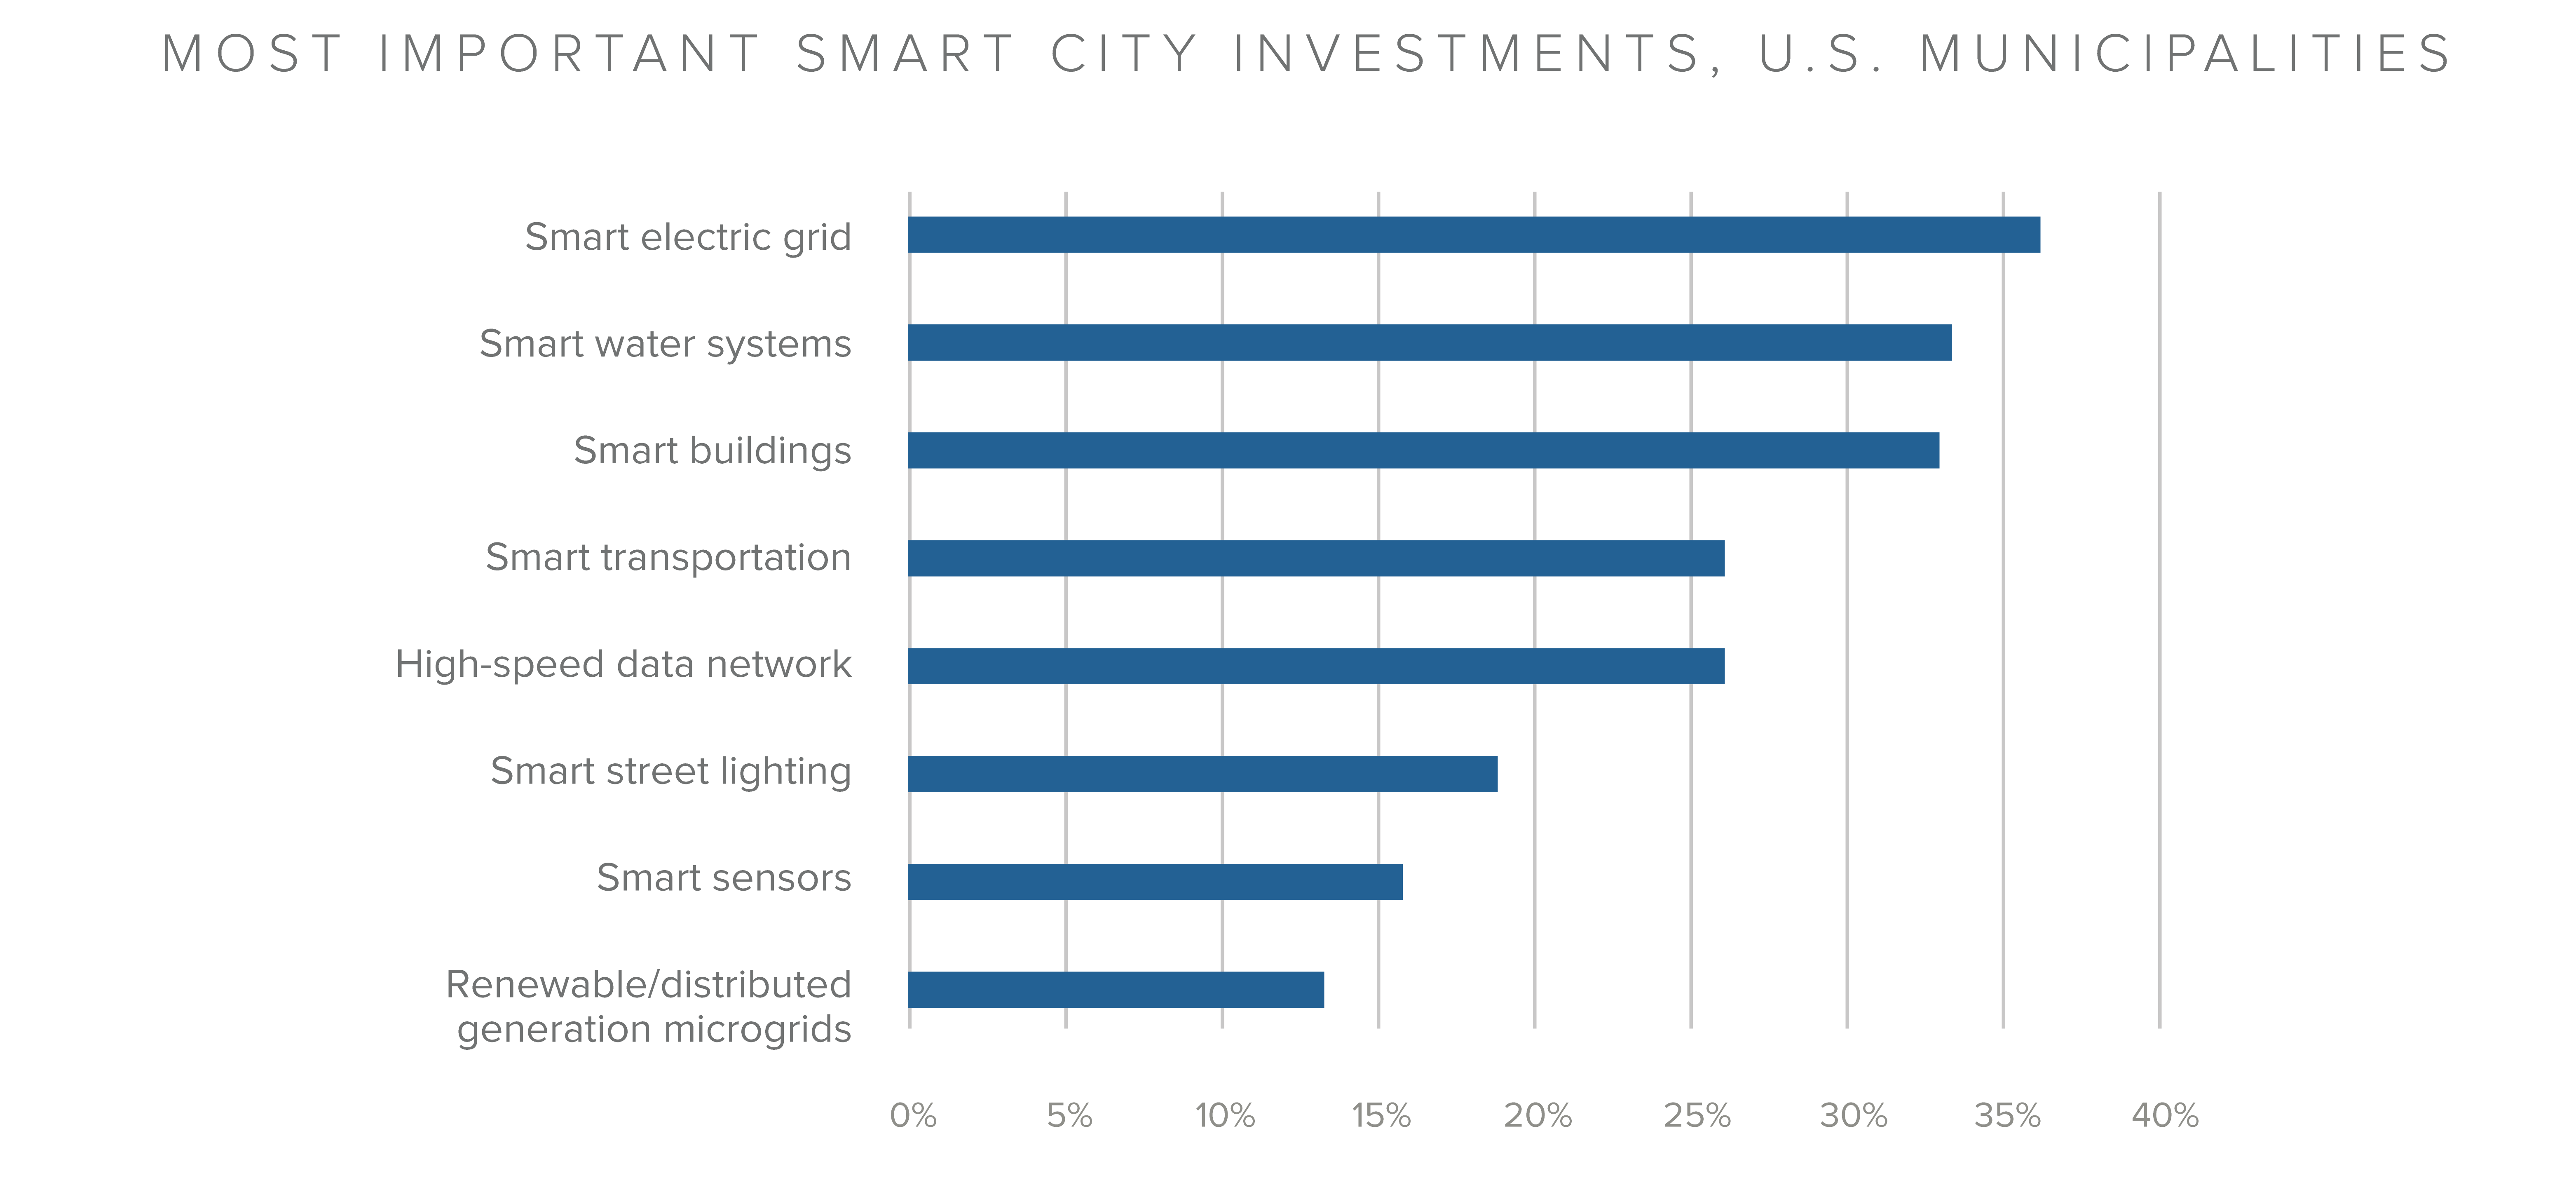 hw-smartcitiesgraphics-0204-02.png